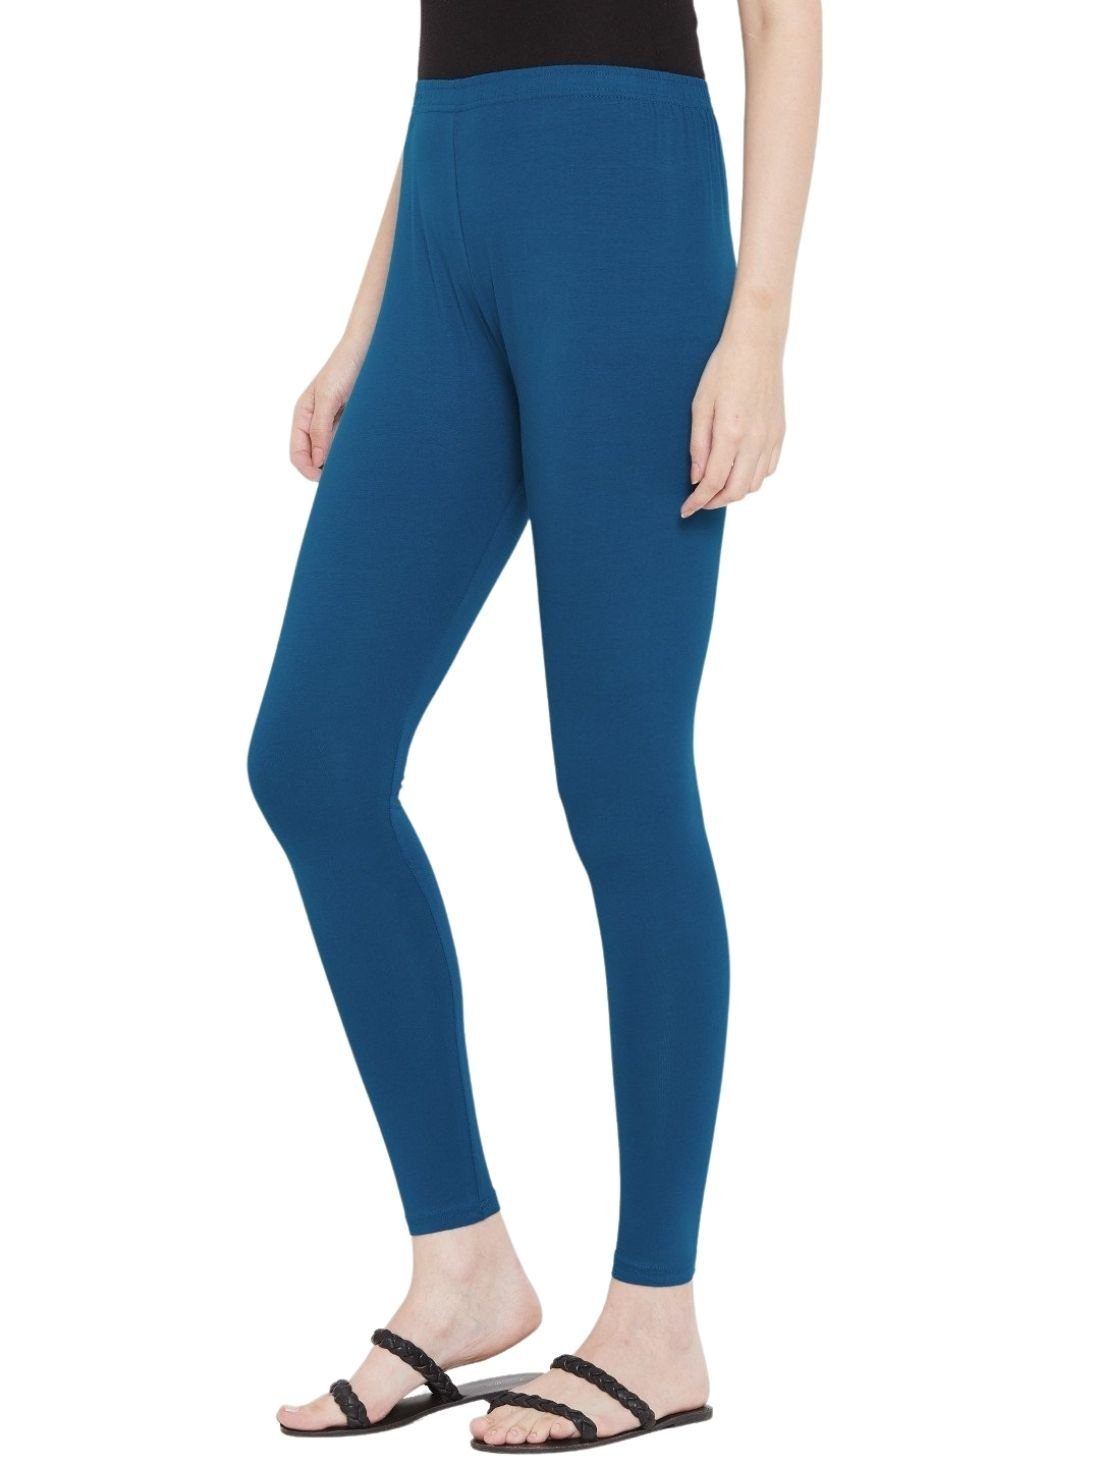 Comfort Lady Touch Colored Leggings